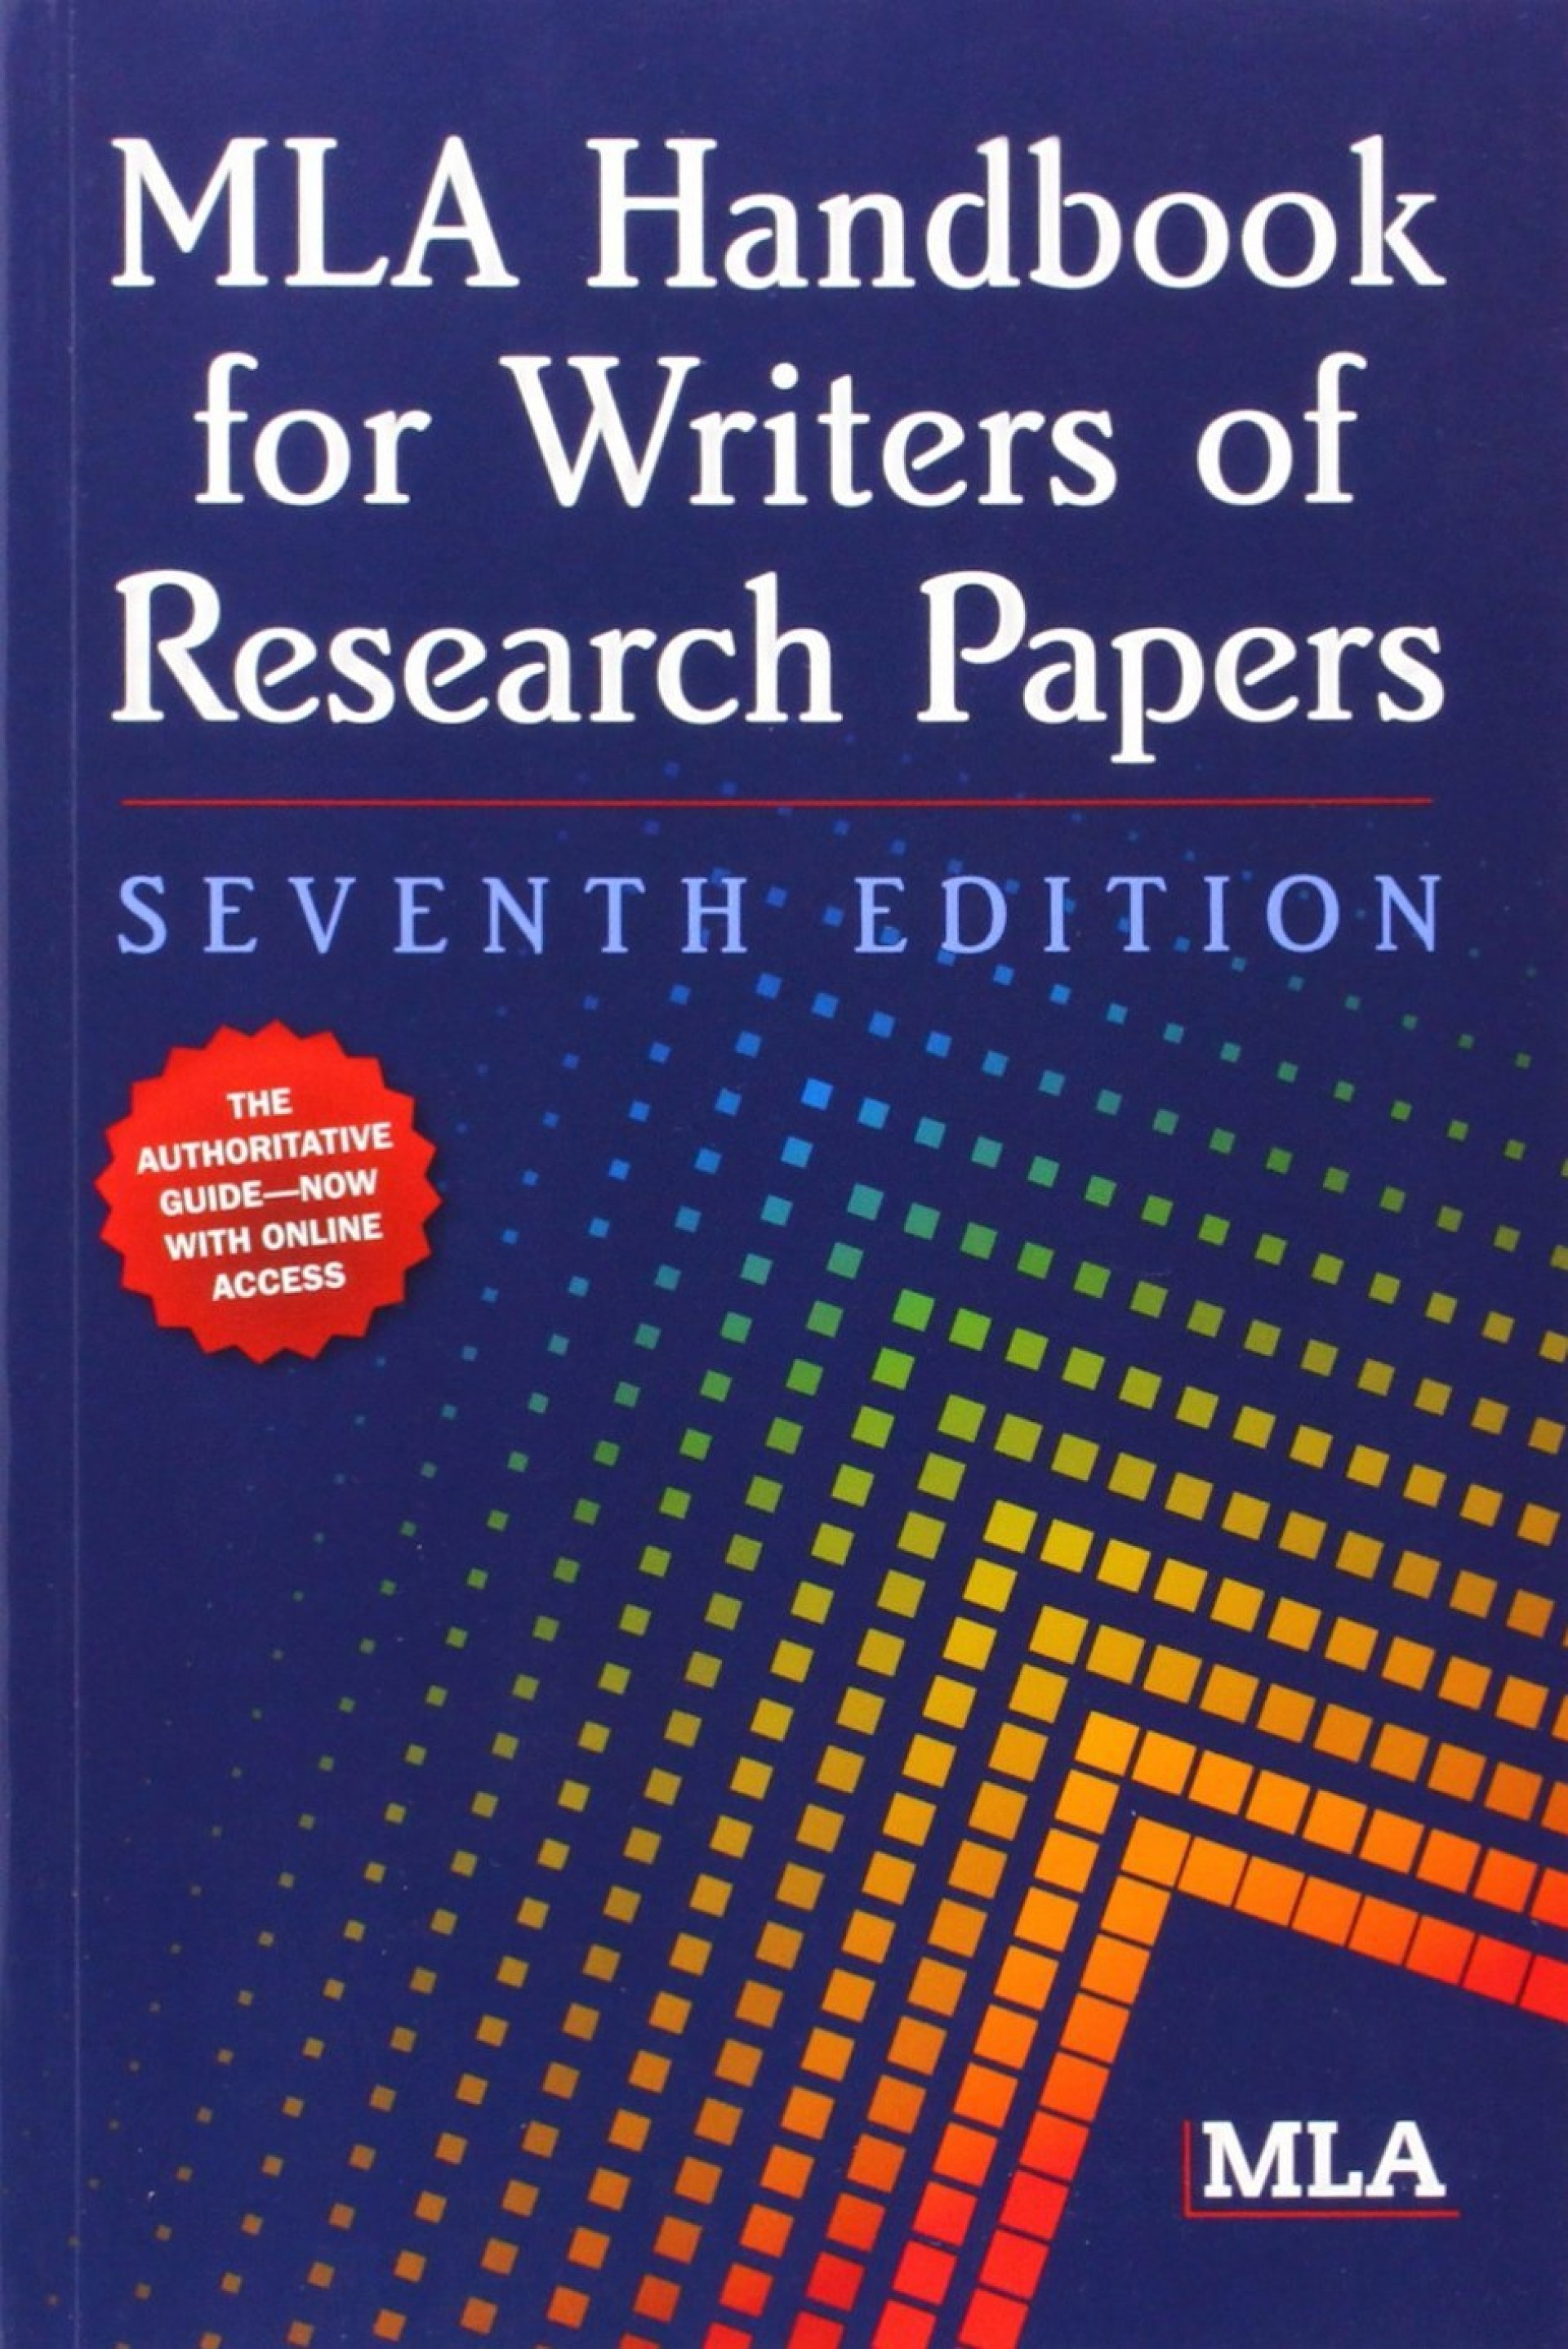 001 Mla Handbook For Writing Research Papers Paper Frightening Writers Of 8th Edition Pdf Free Download According To The 1920